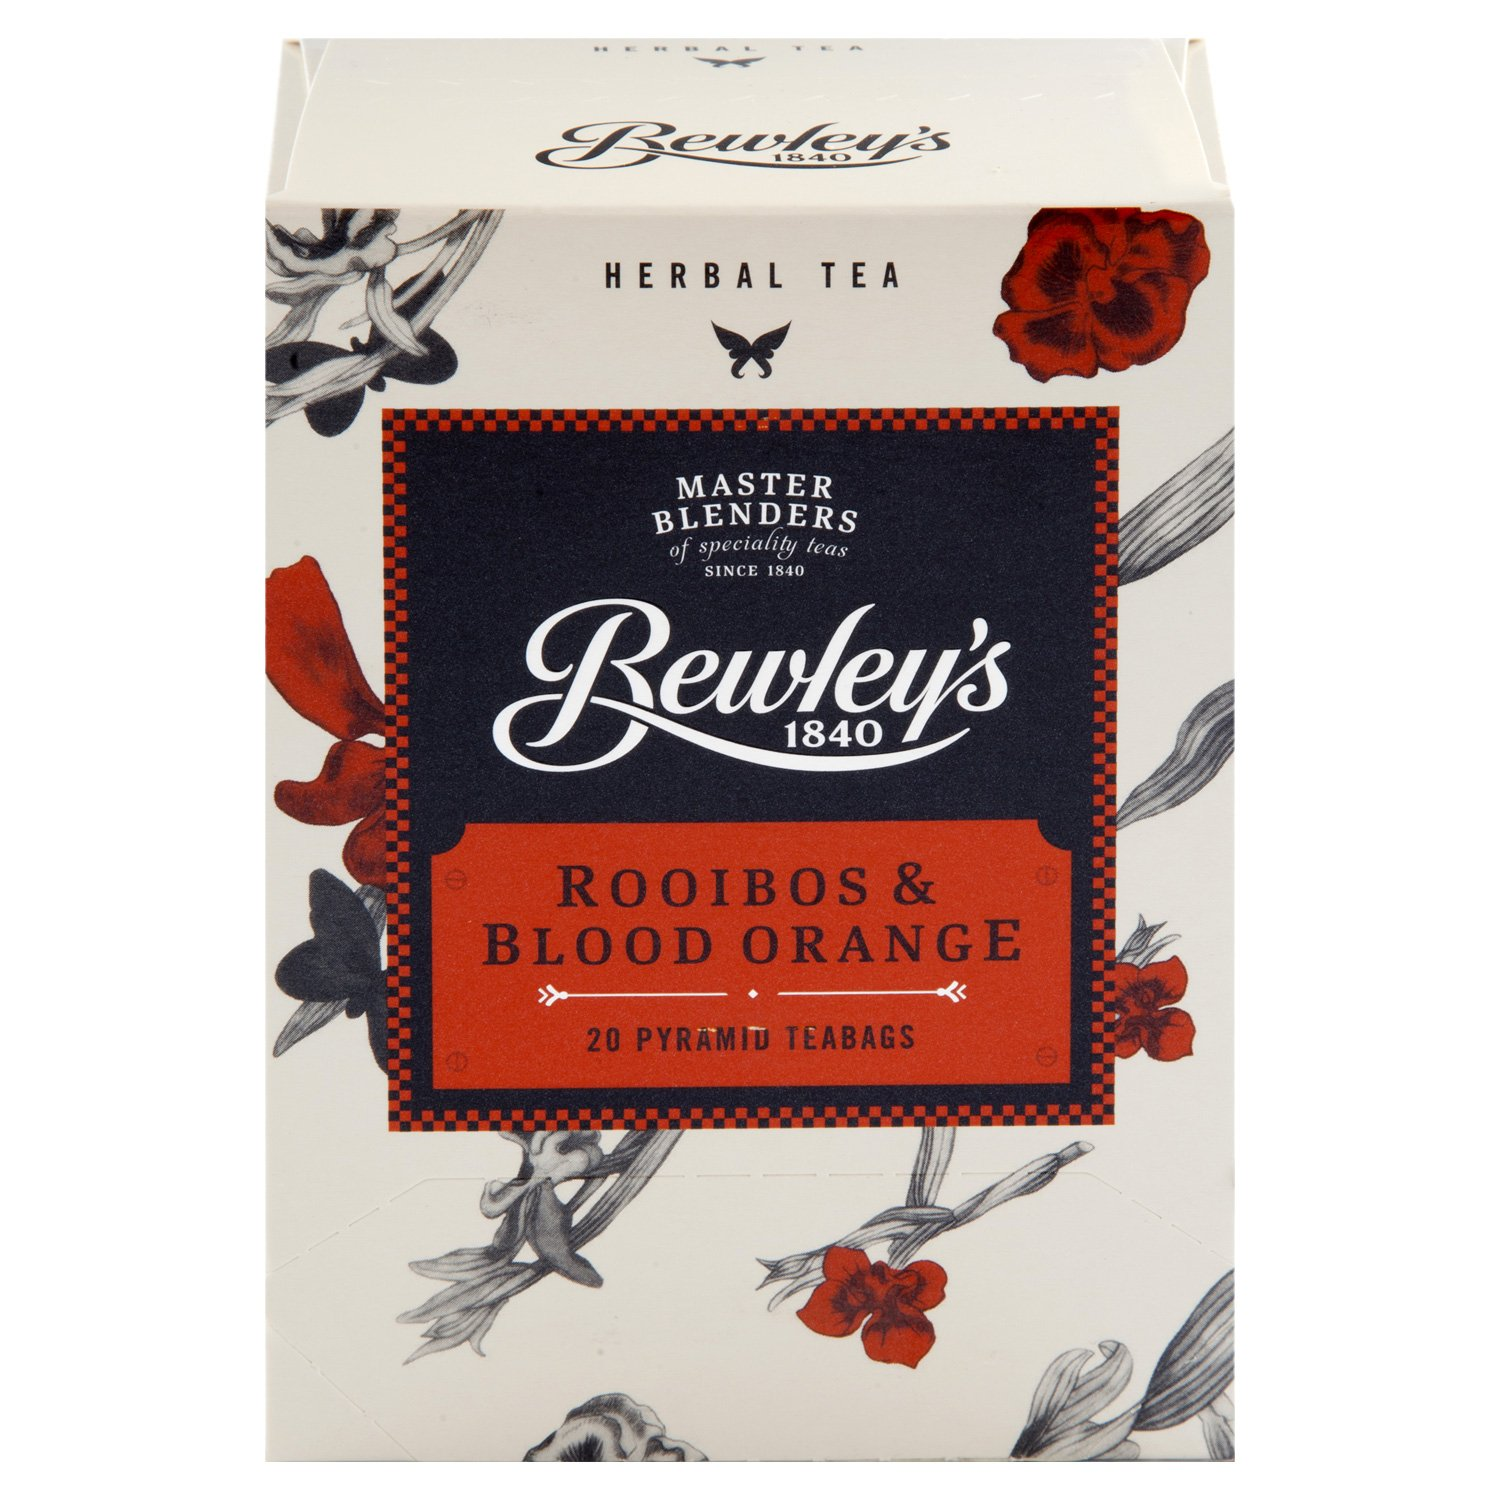 Bewley's Rooibos & Blood Orange Pyramid Teabags - 20 ct